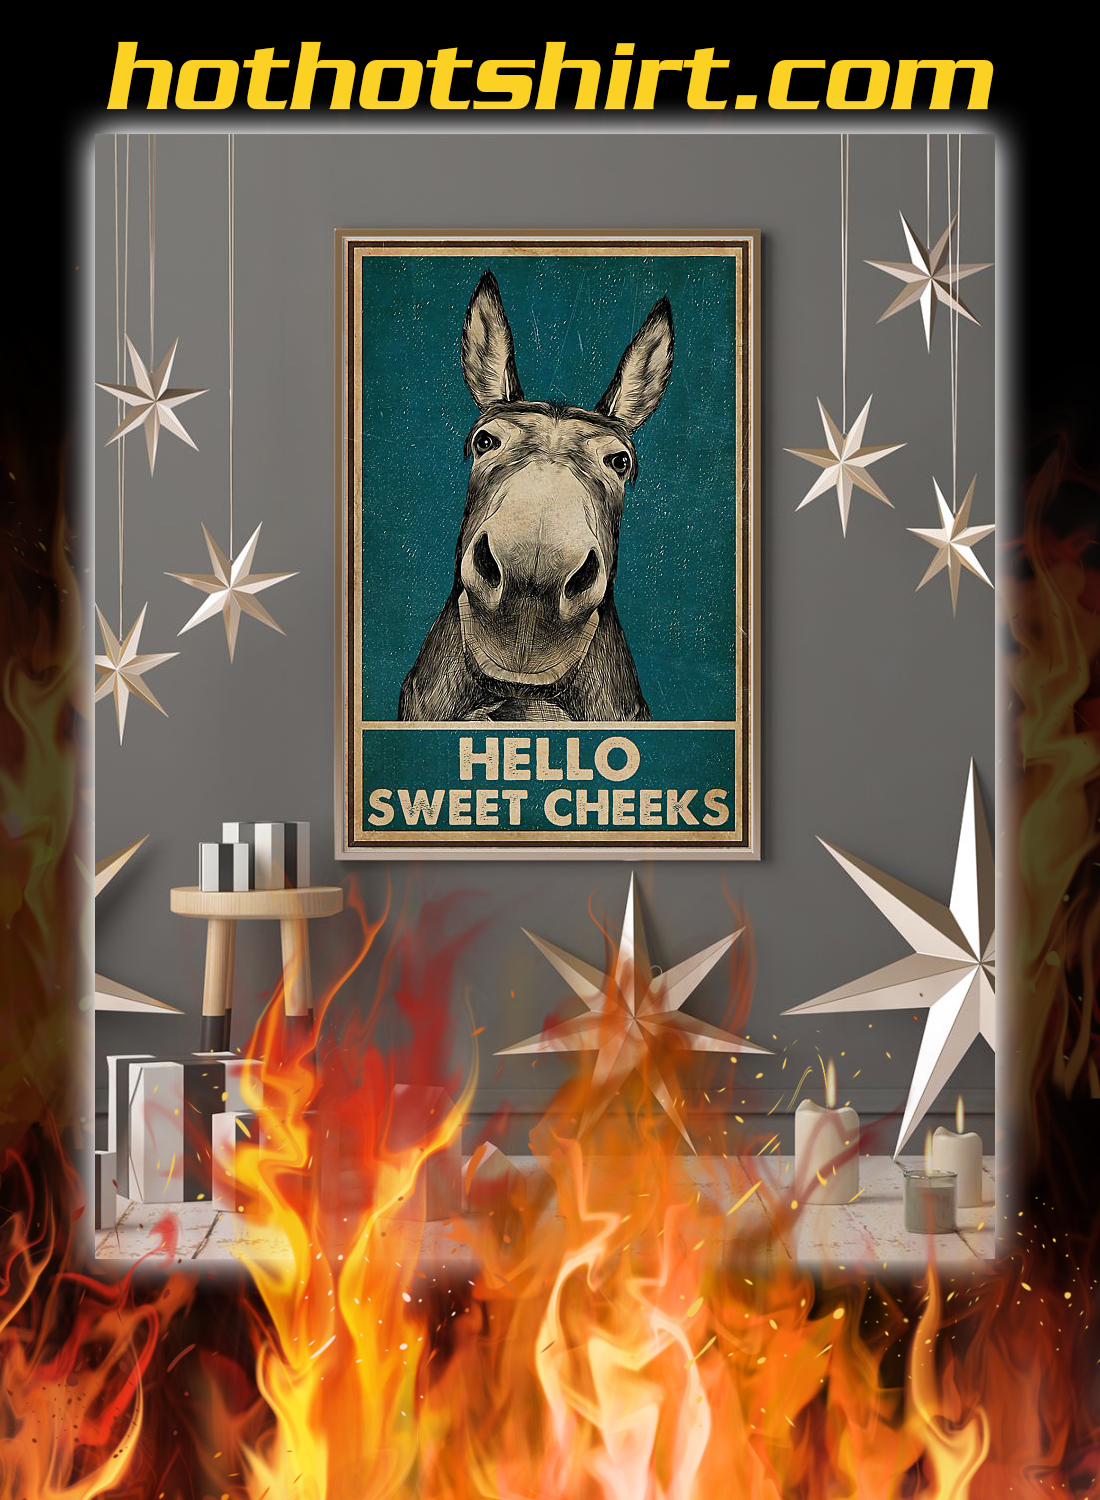 Hello sweet cheeks donkey poster 3